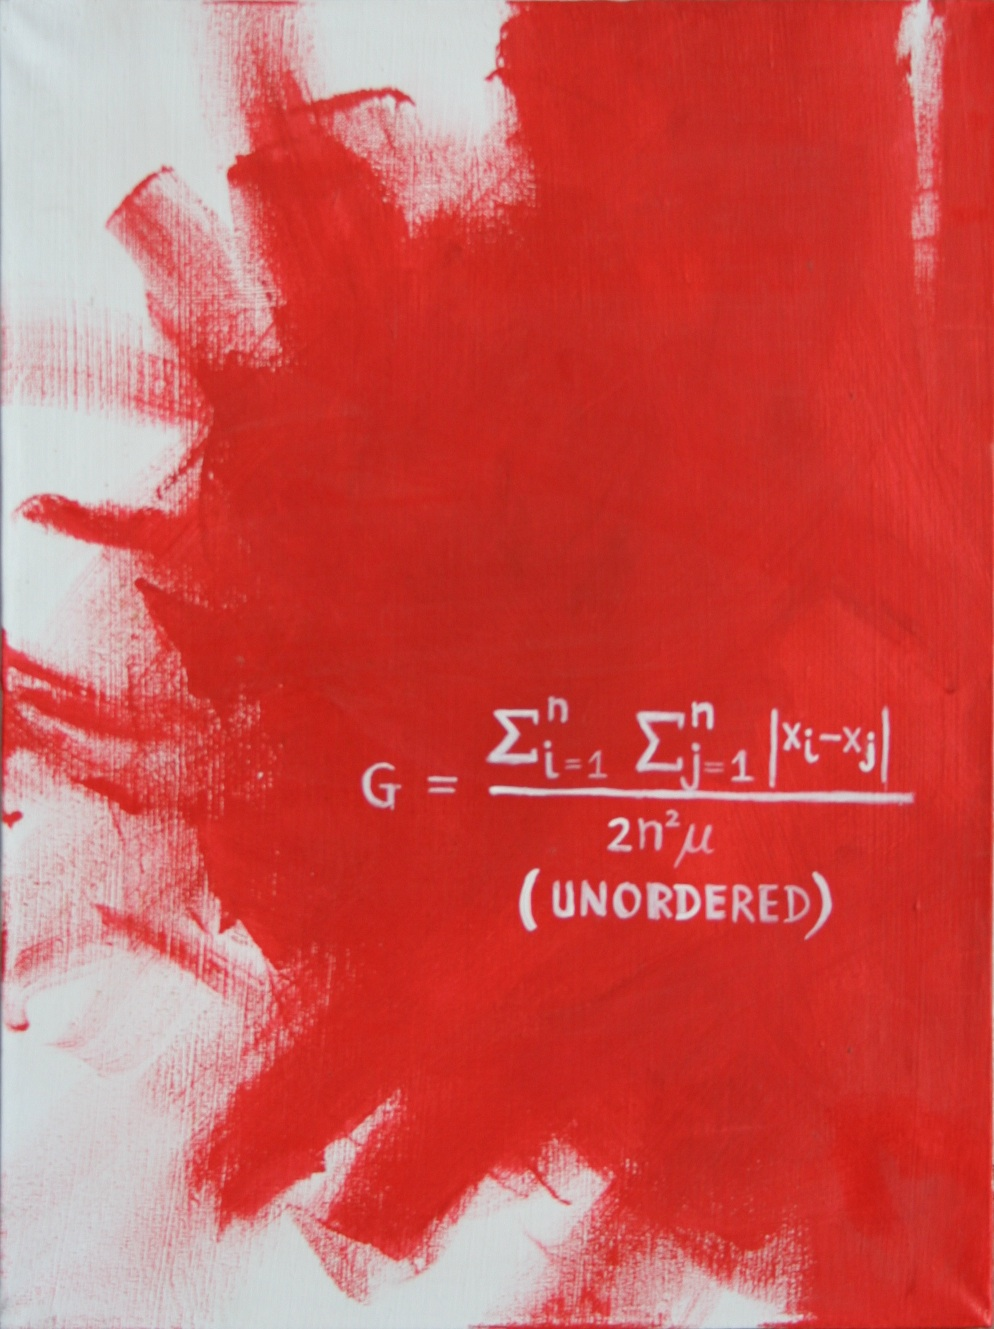 """Red paint on white canvas with a mathematical equation symbolizing """"unordered"""""""